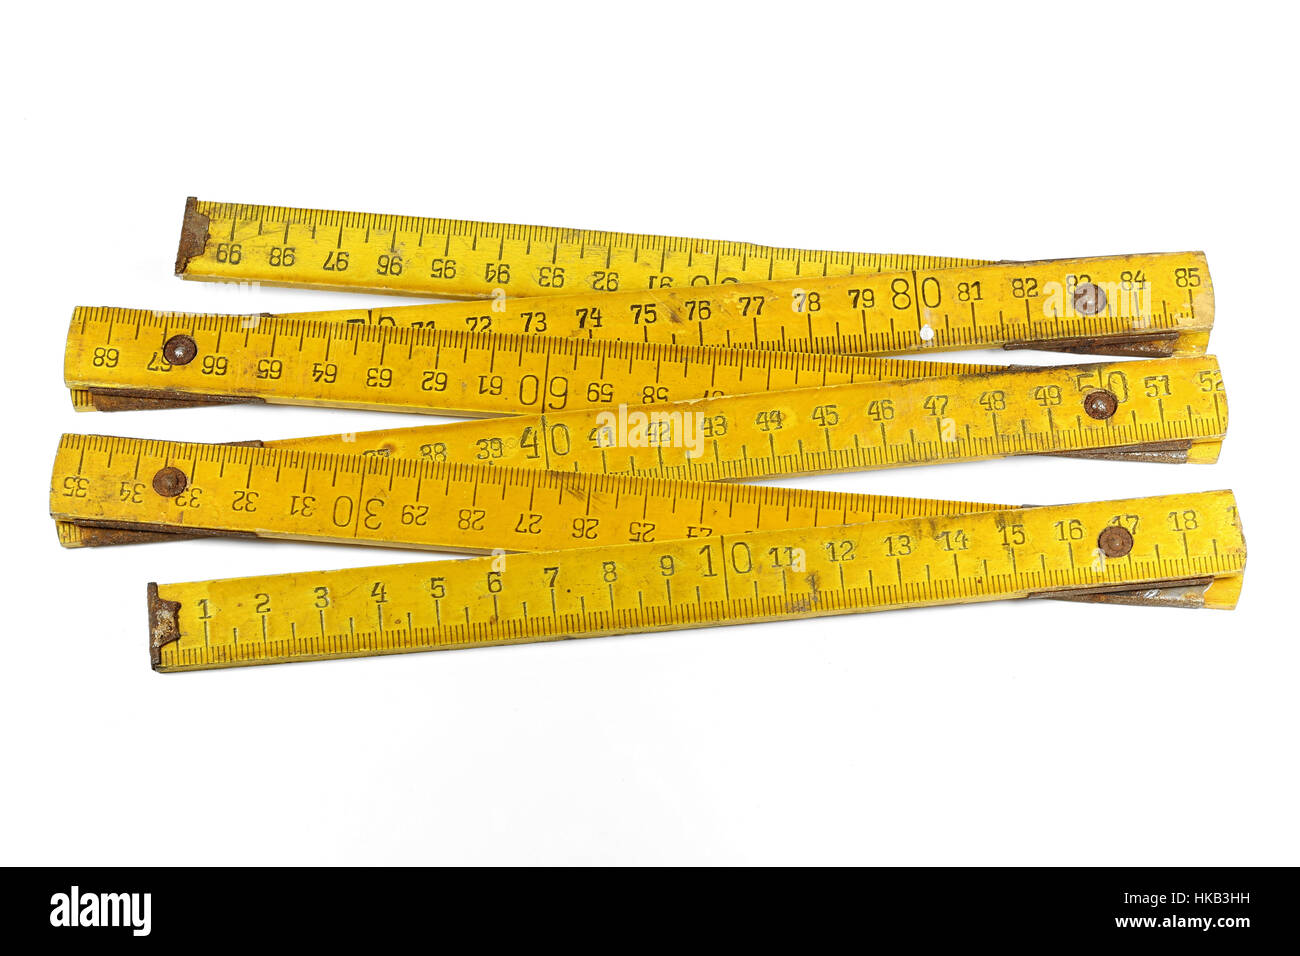 vintage 1 meter yardstick isolated on white background - Stock Image